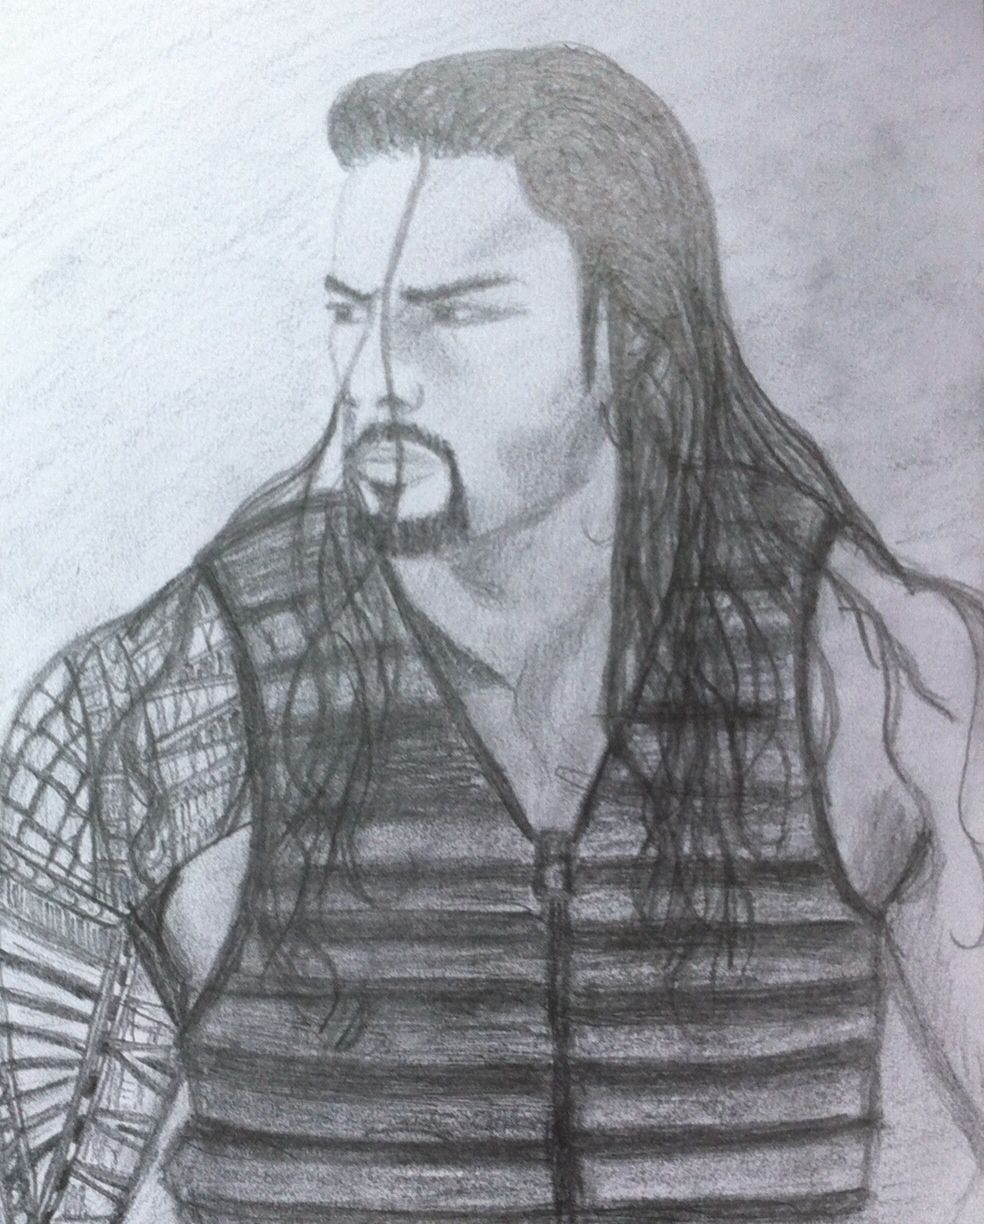 My drawing of the gorgeous Roman, not perfect but my best attempt ...